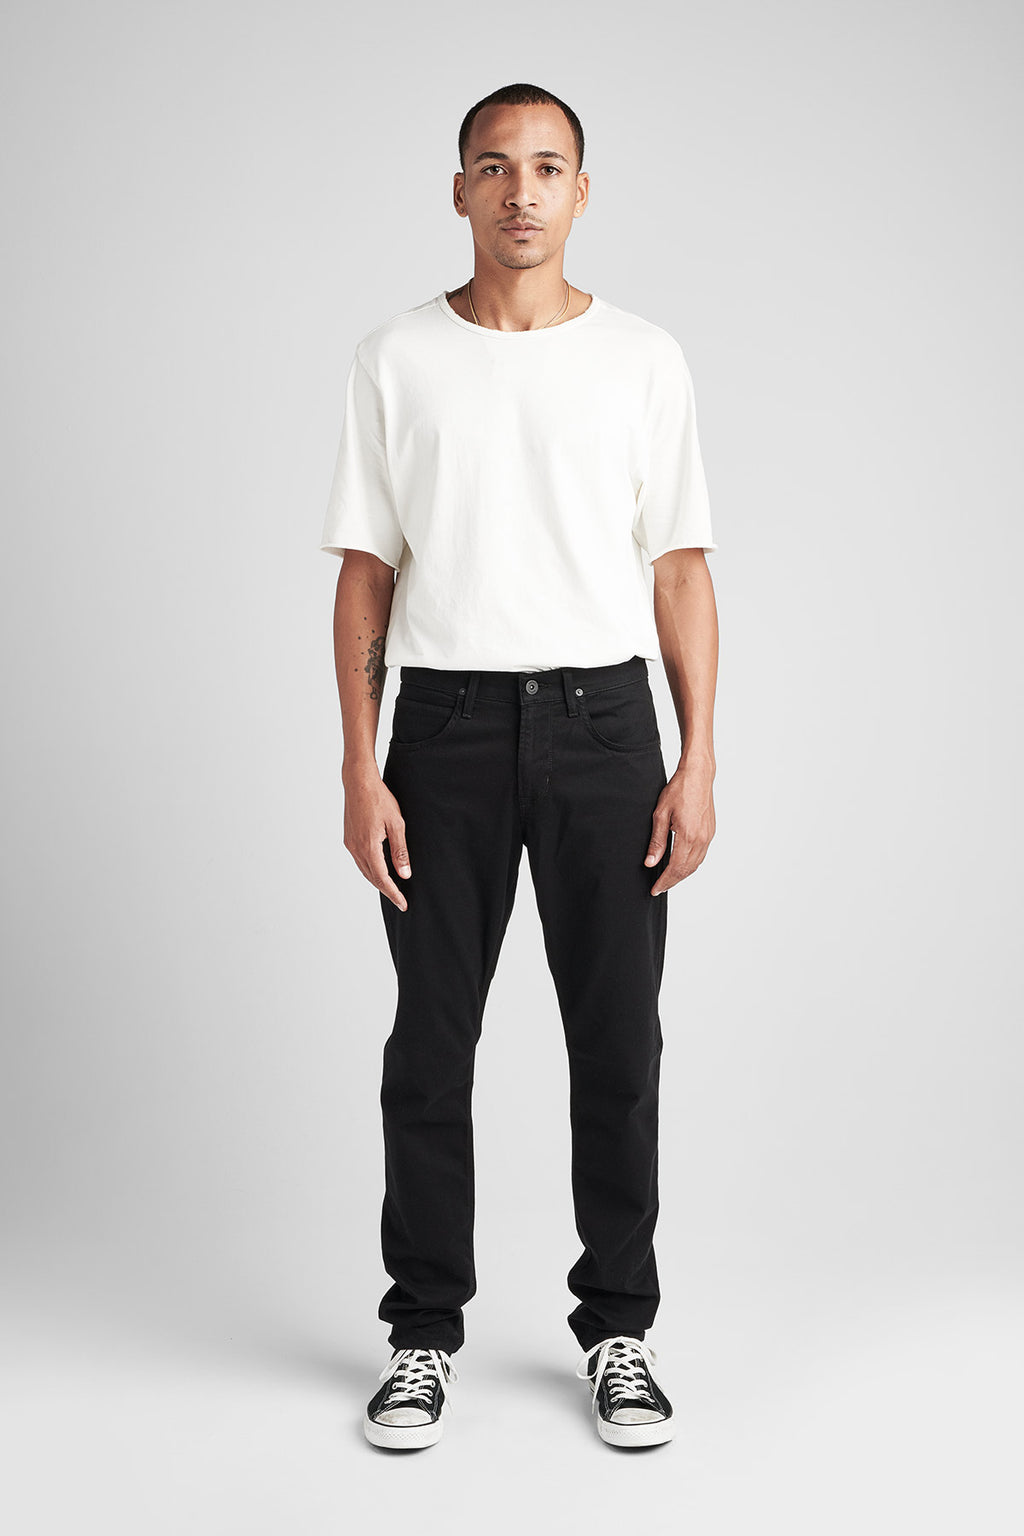 BLAKE SLIM STRAIGHT TWILL JEAN - BLACKENED - Image 1